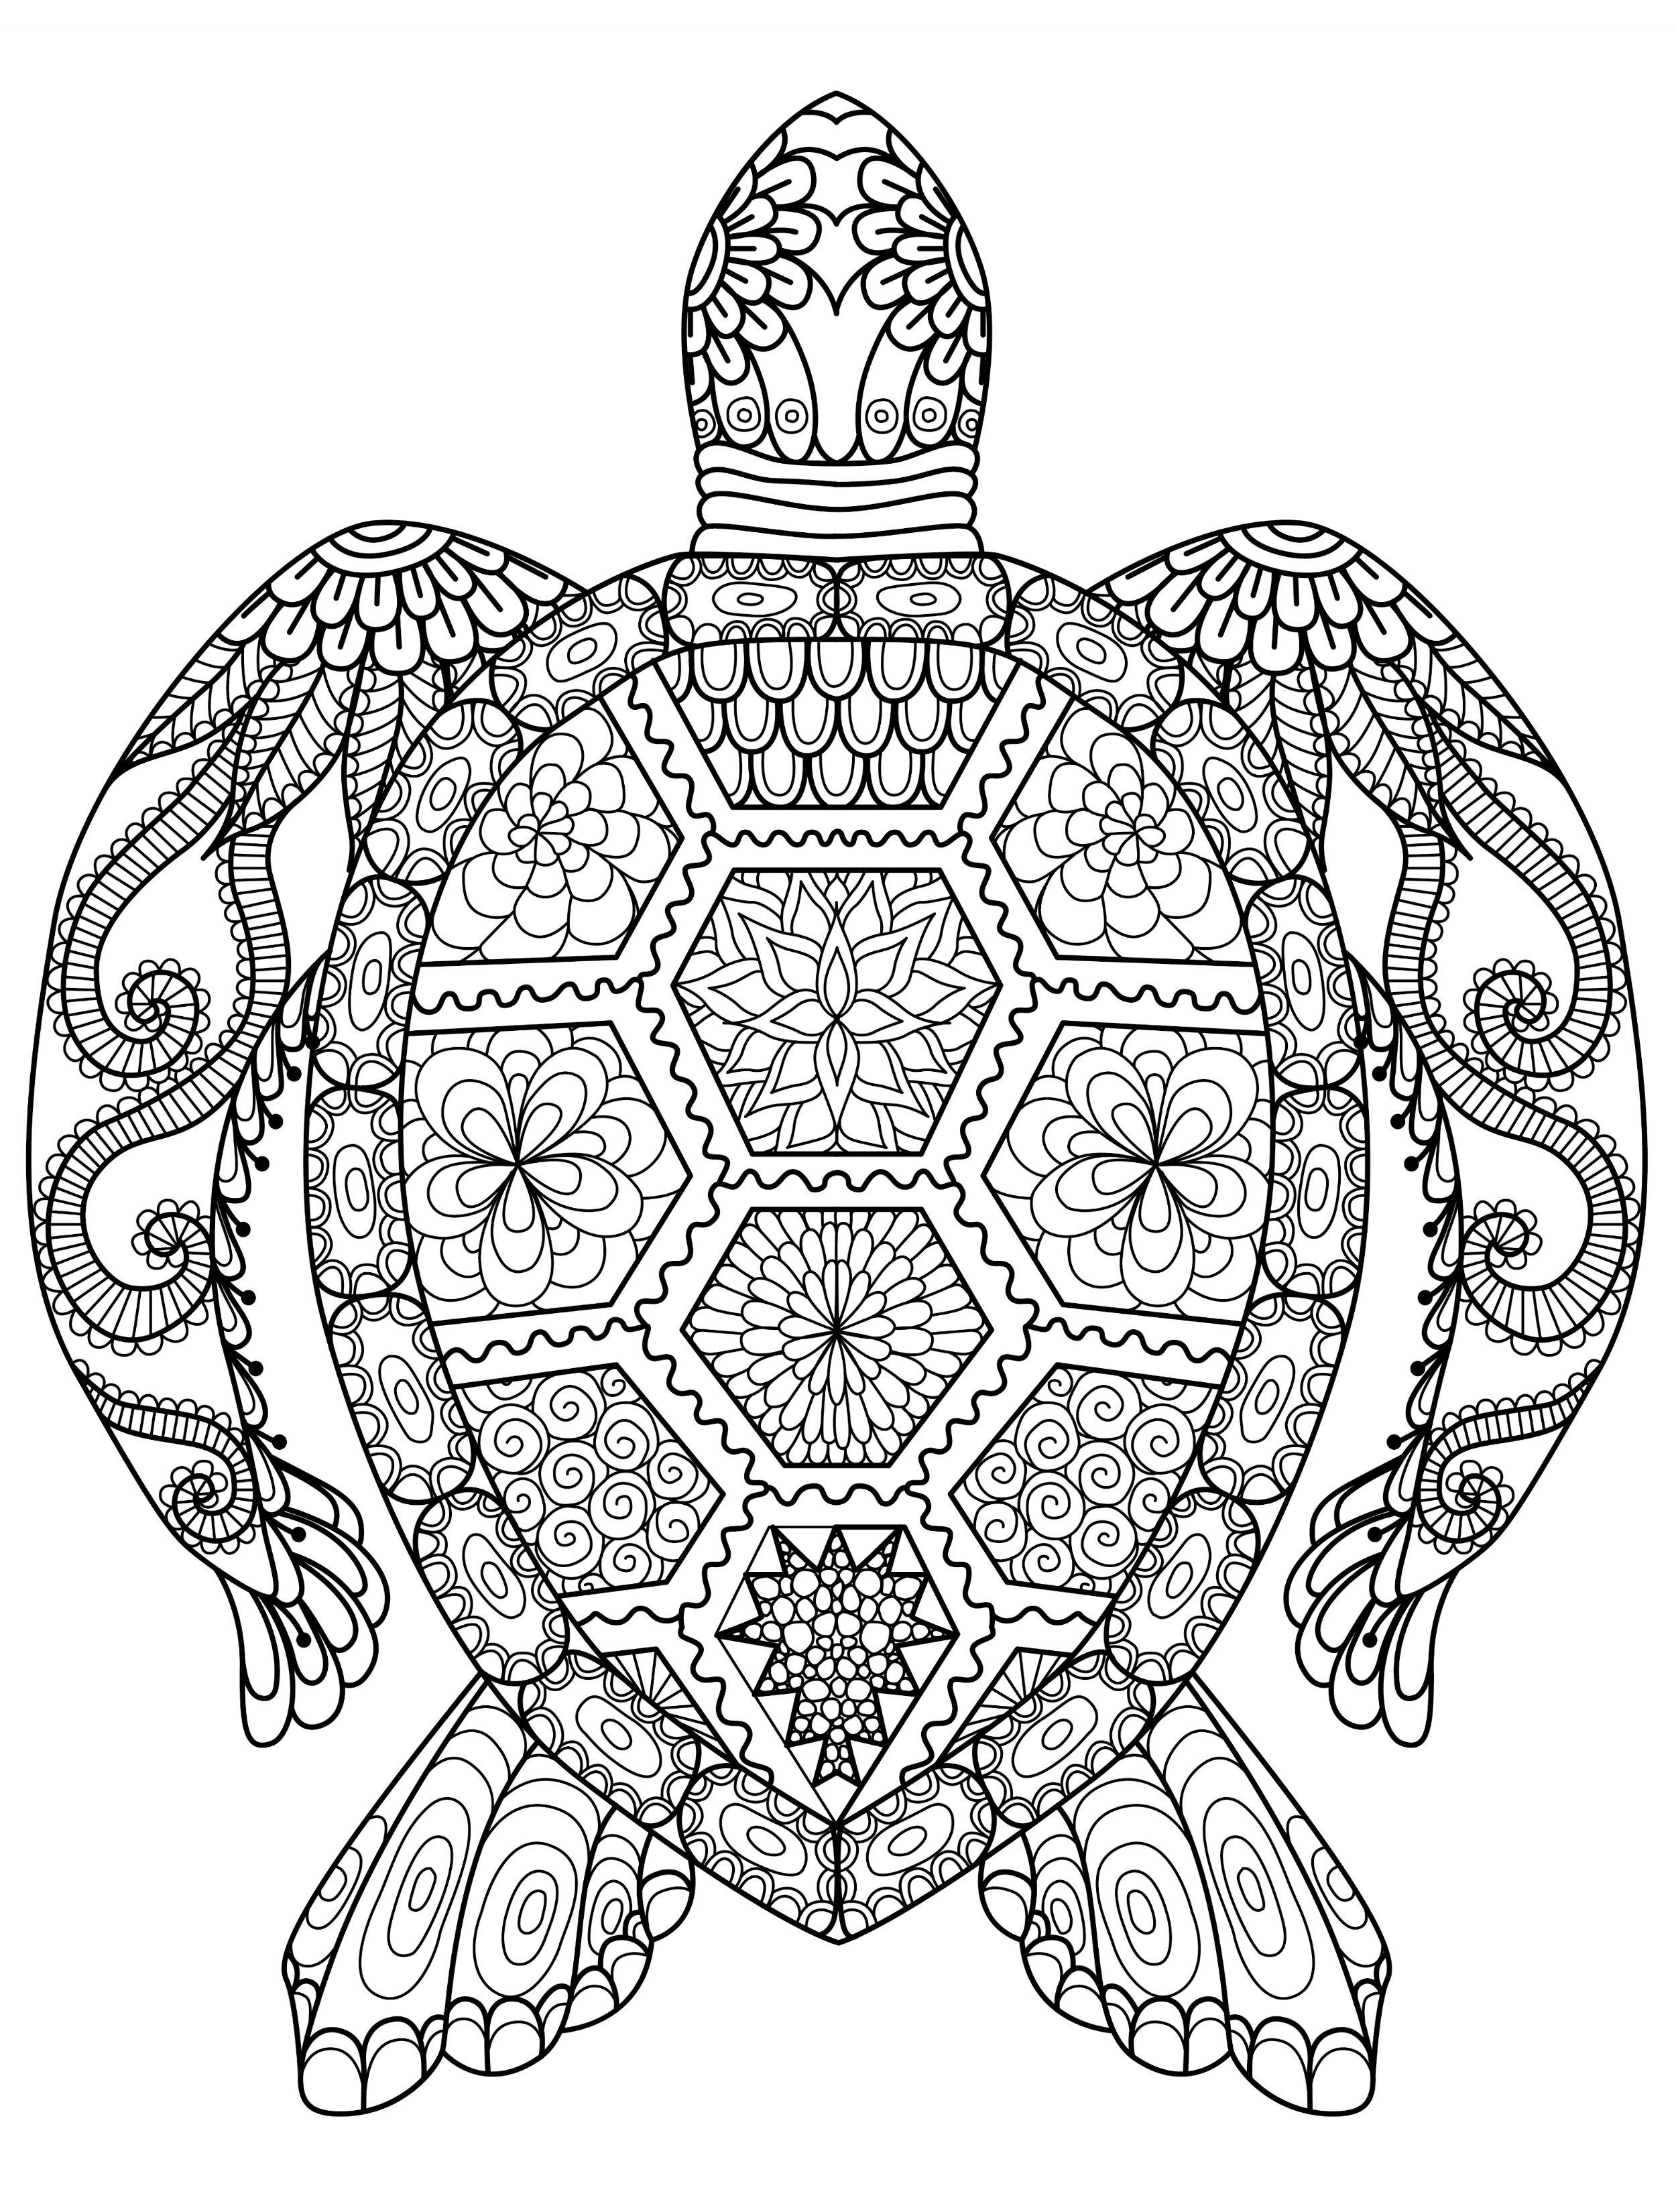 20 gorgeous free printable adult coloring pages … | adult coloring